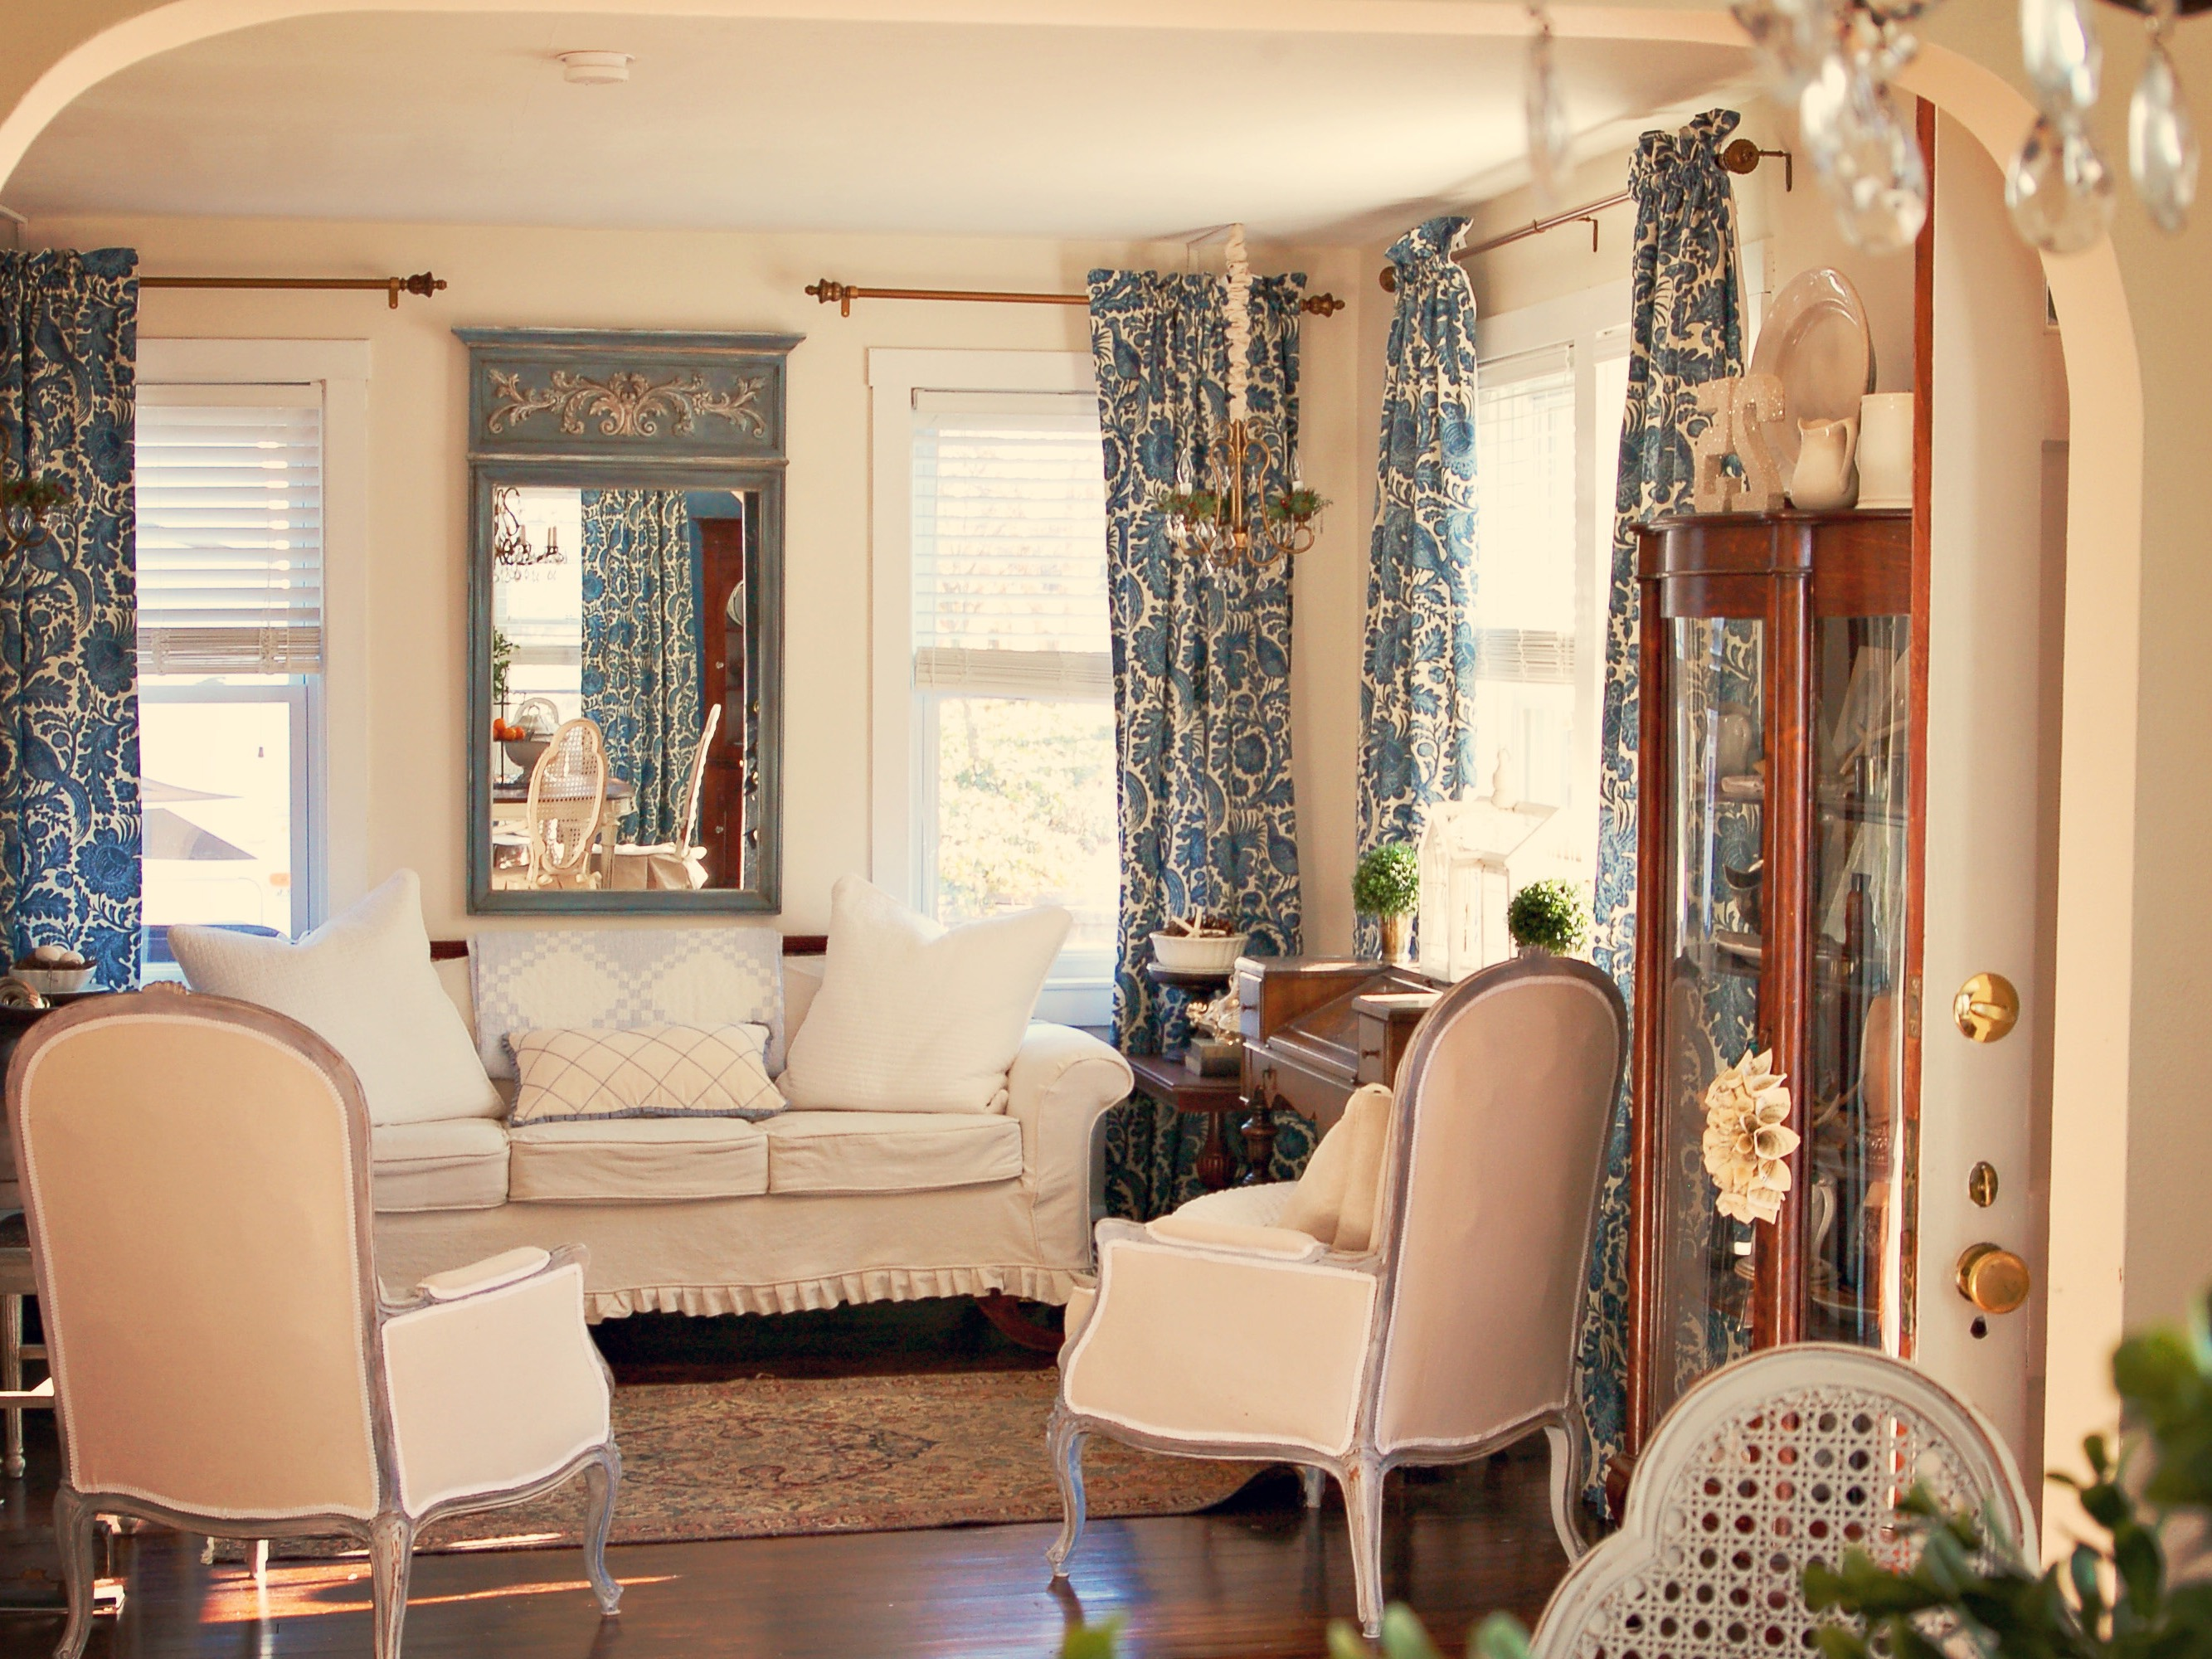 Blue And Cream French Country Living Room (Image 2 of 18)